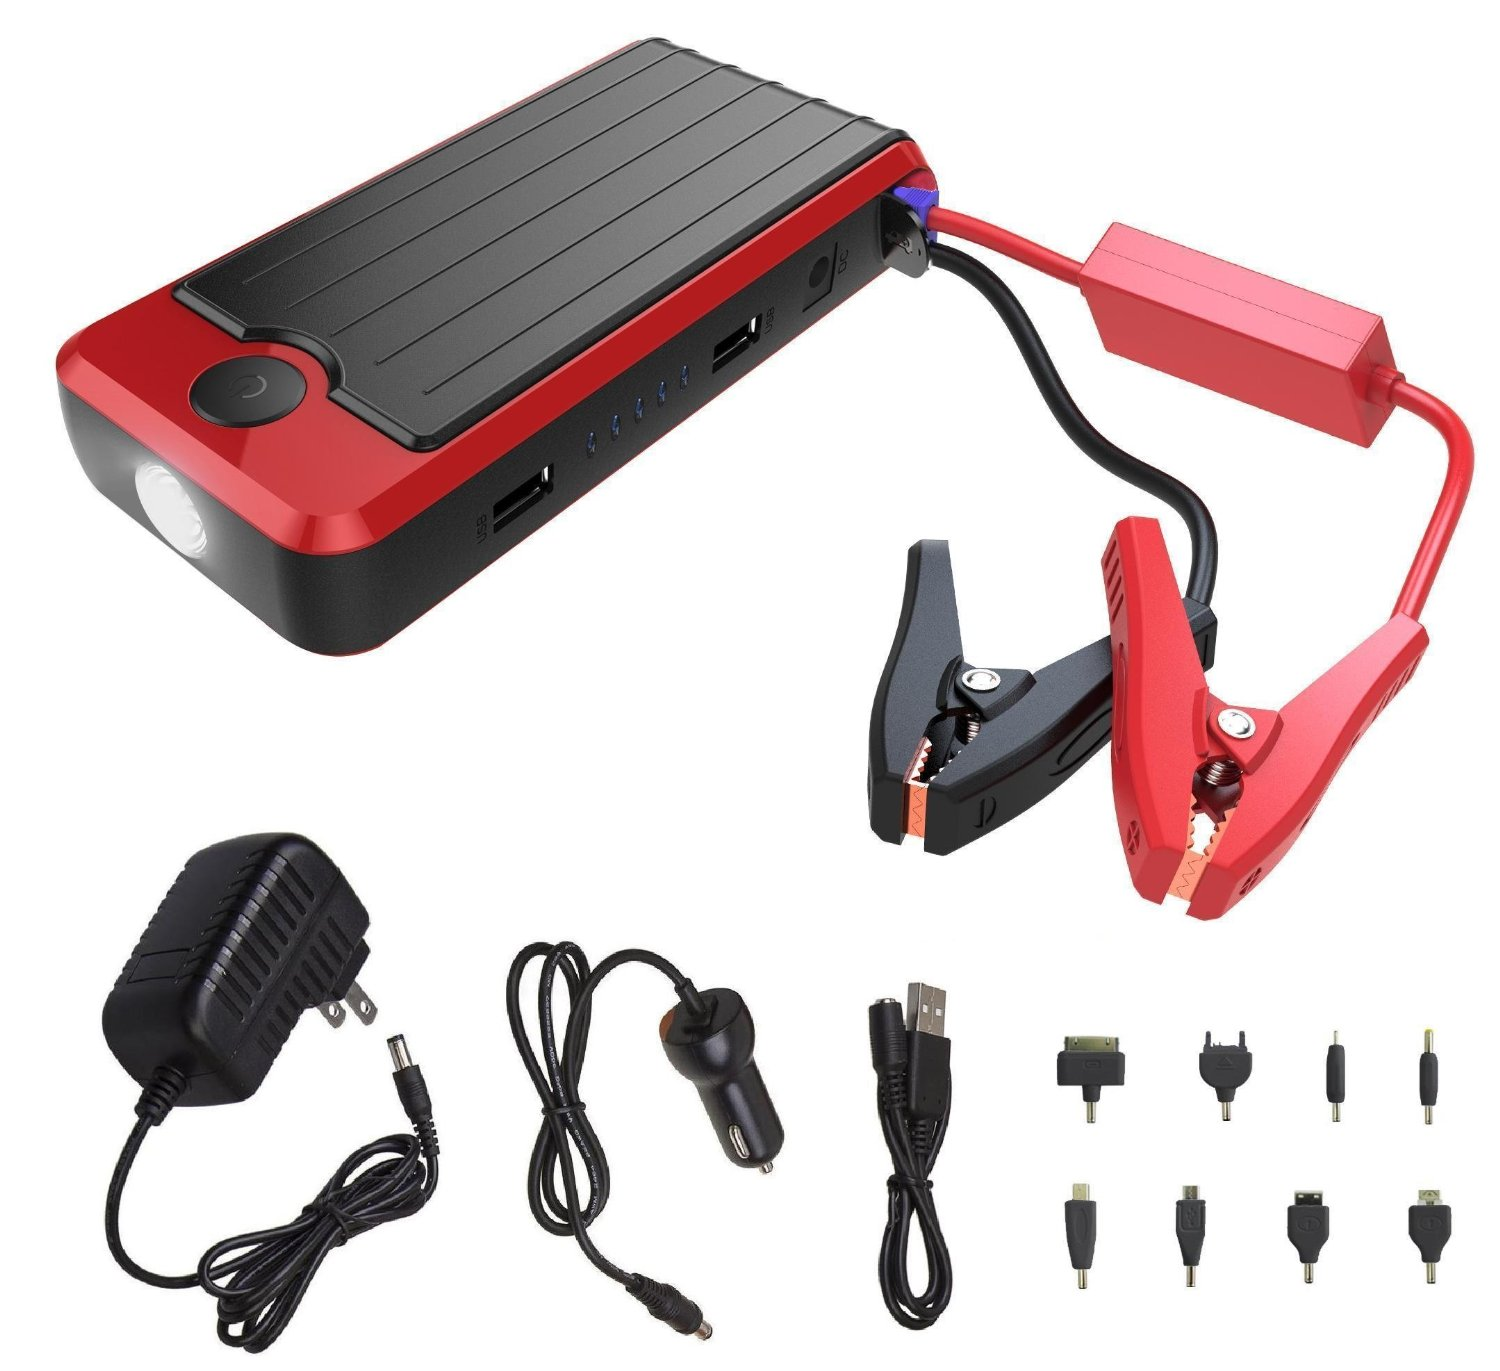 Powerall Pbjs12000r Rosso Red Black Portable Power Bank And Car Jump